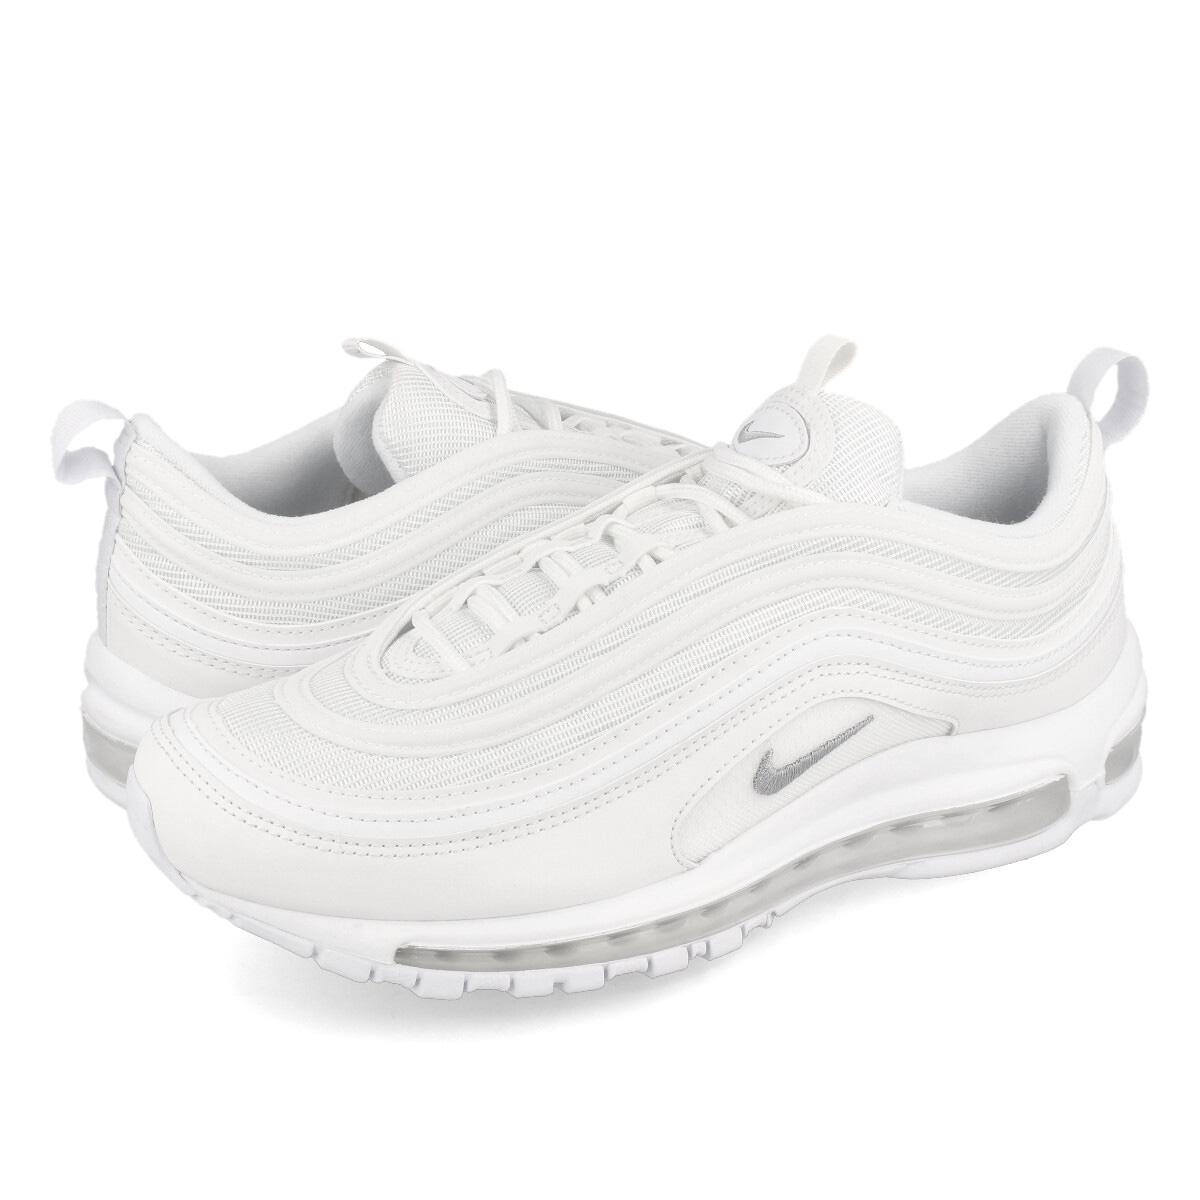 SELECT SHOP LOWTEX  NIKE AIR MAX 97 Kie Ney AMAX 97 WHITE WHITE ... 380983b43